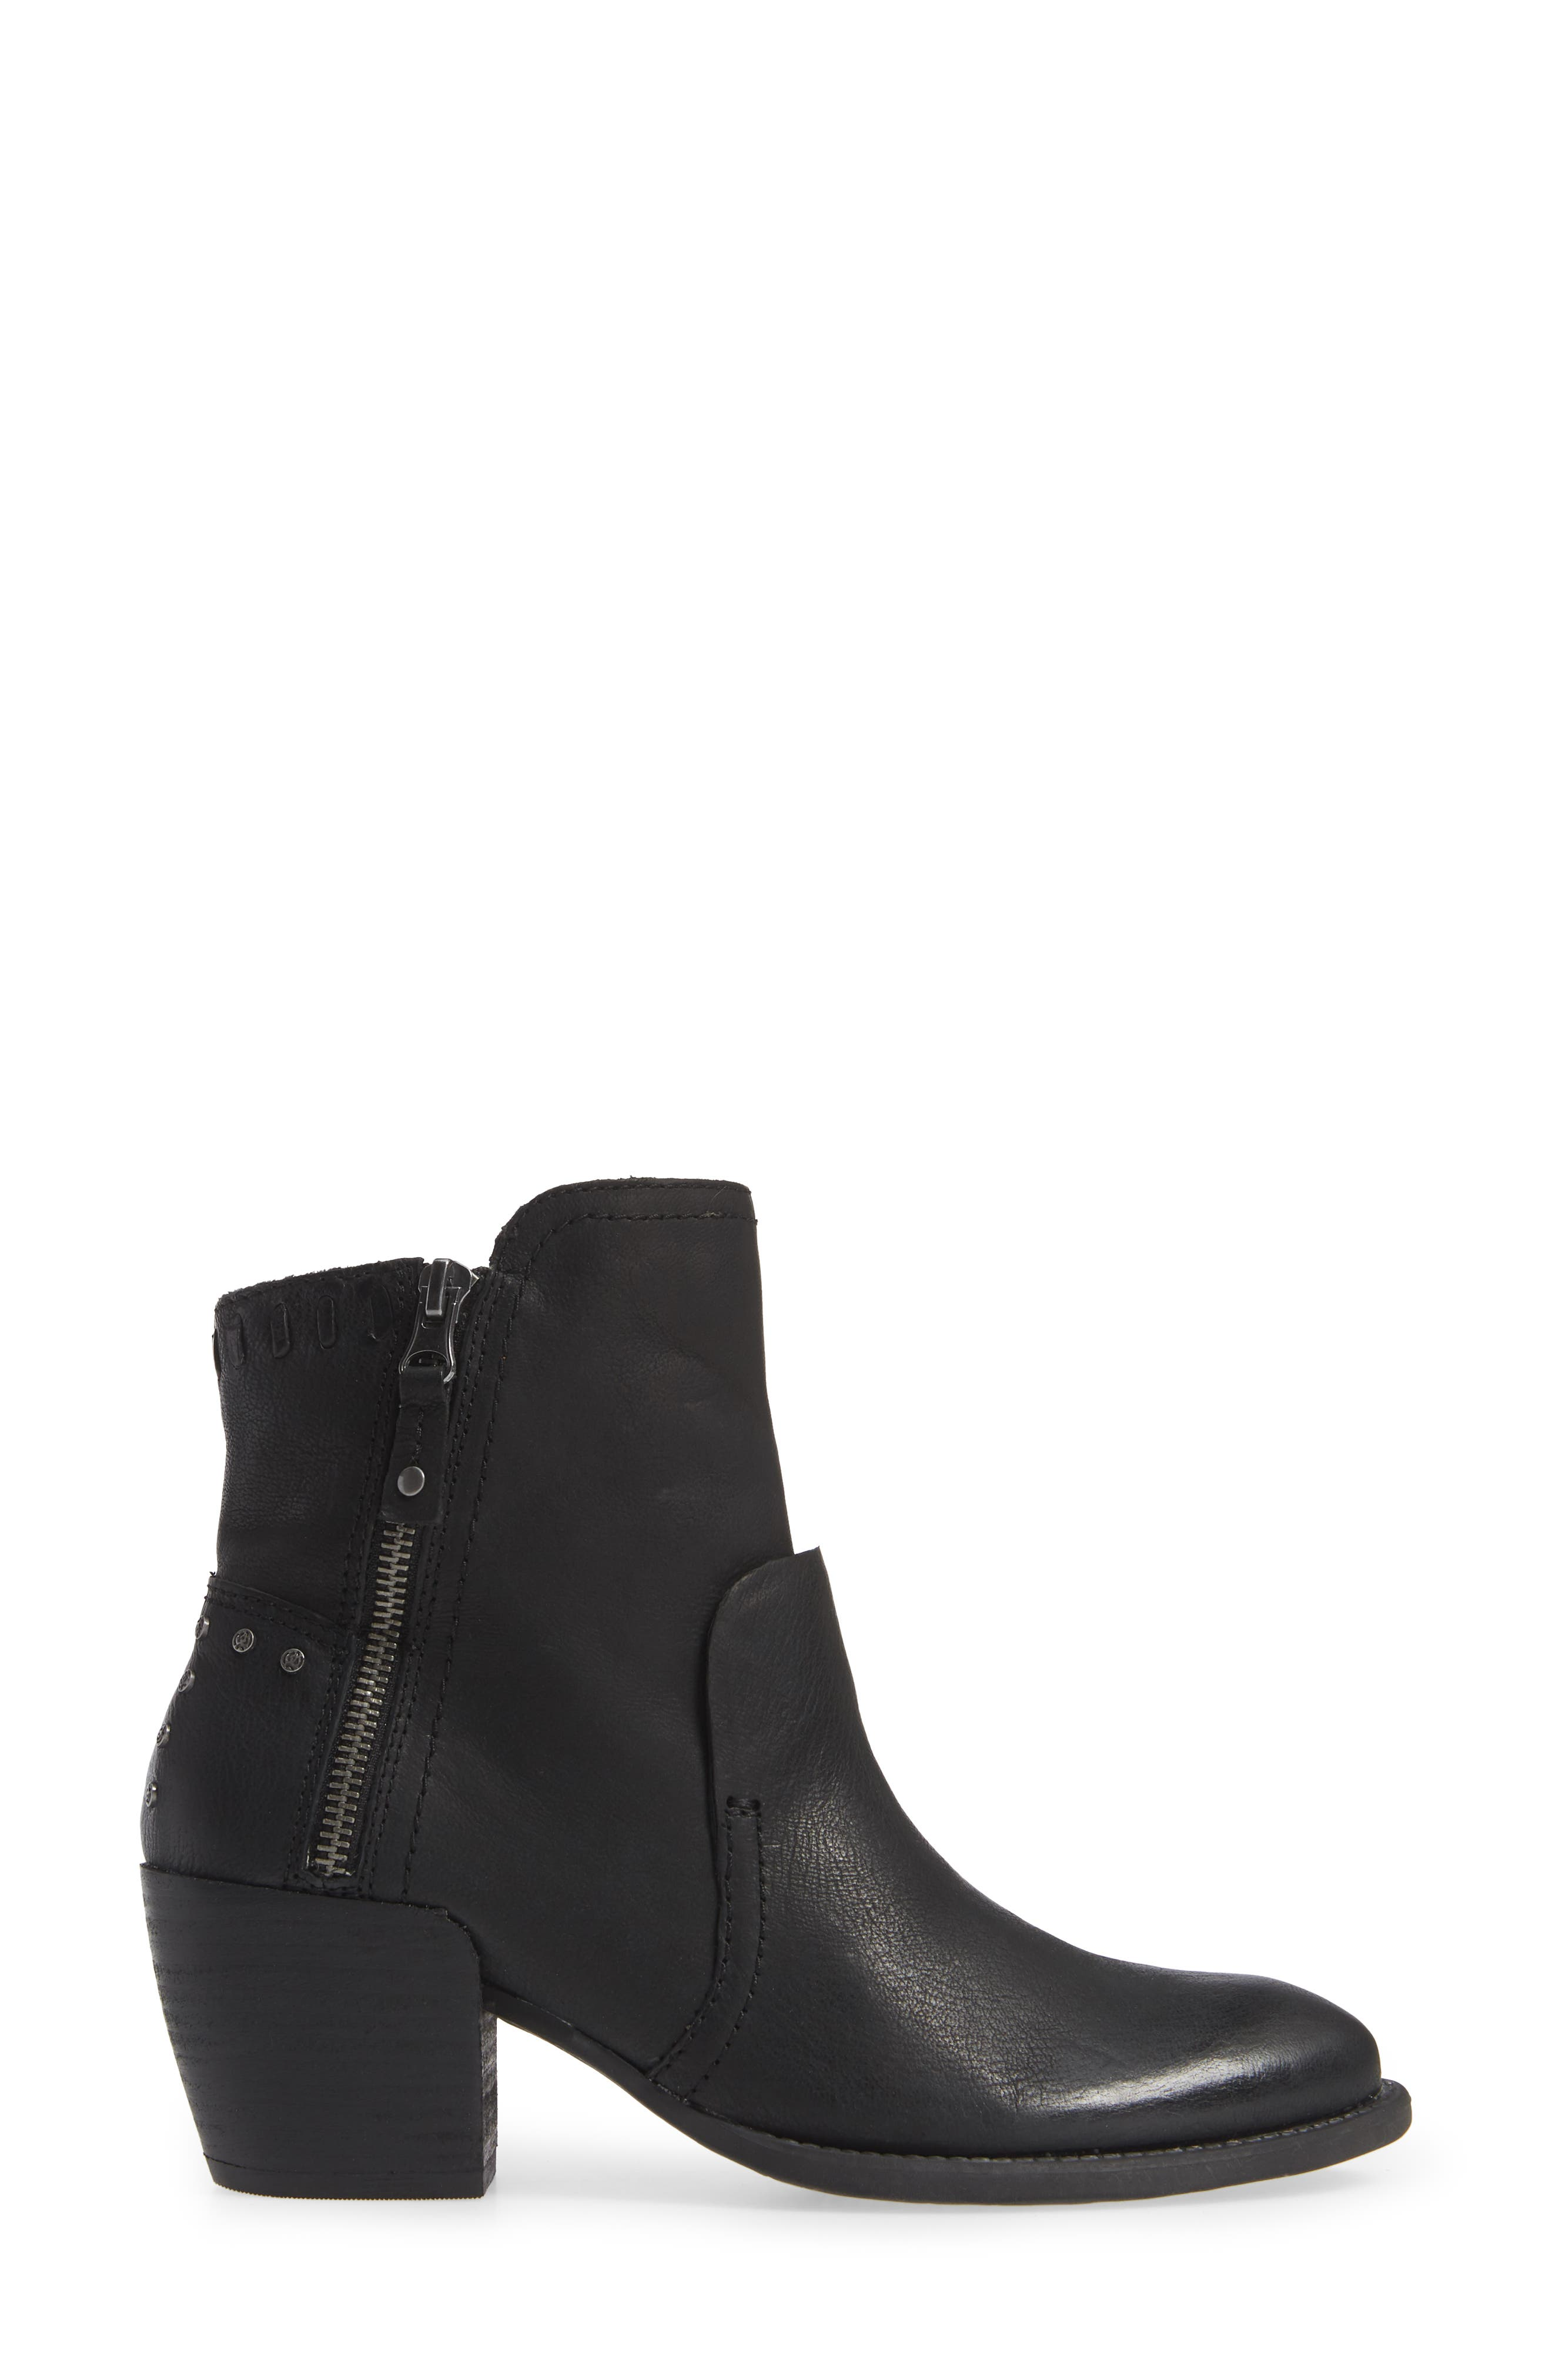 Red Eye Bootie,                             Alternate thumbnail 3, color,                             BLACK LEATHER